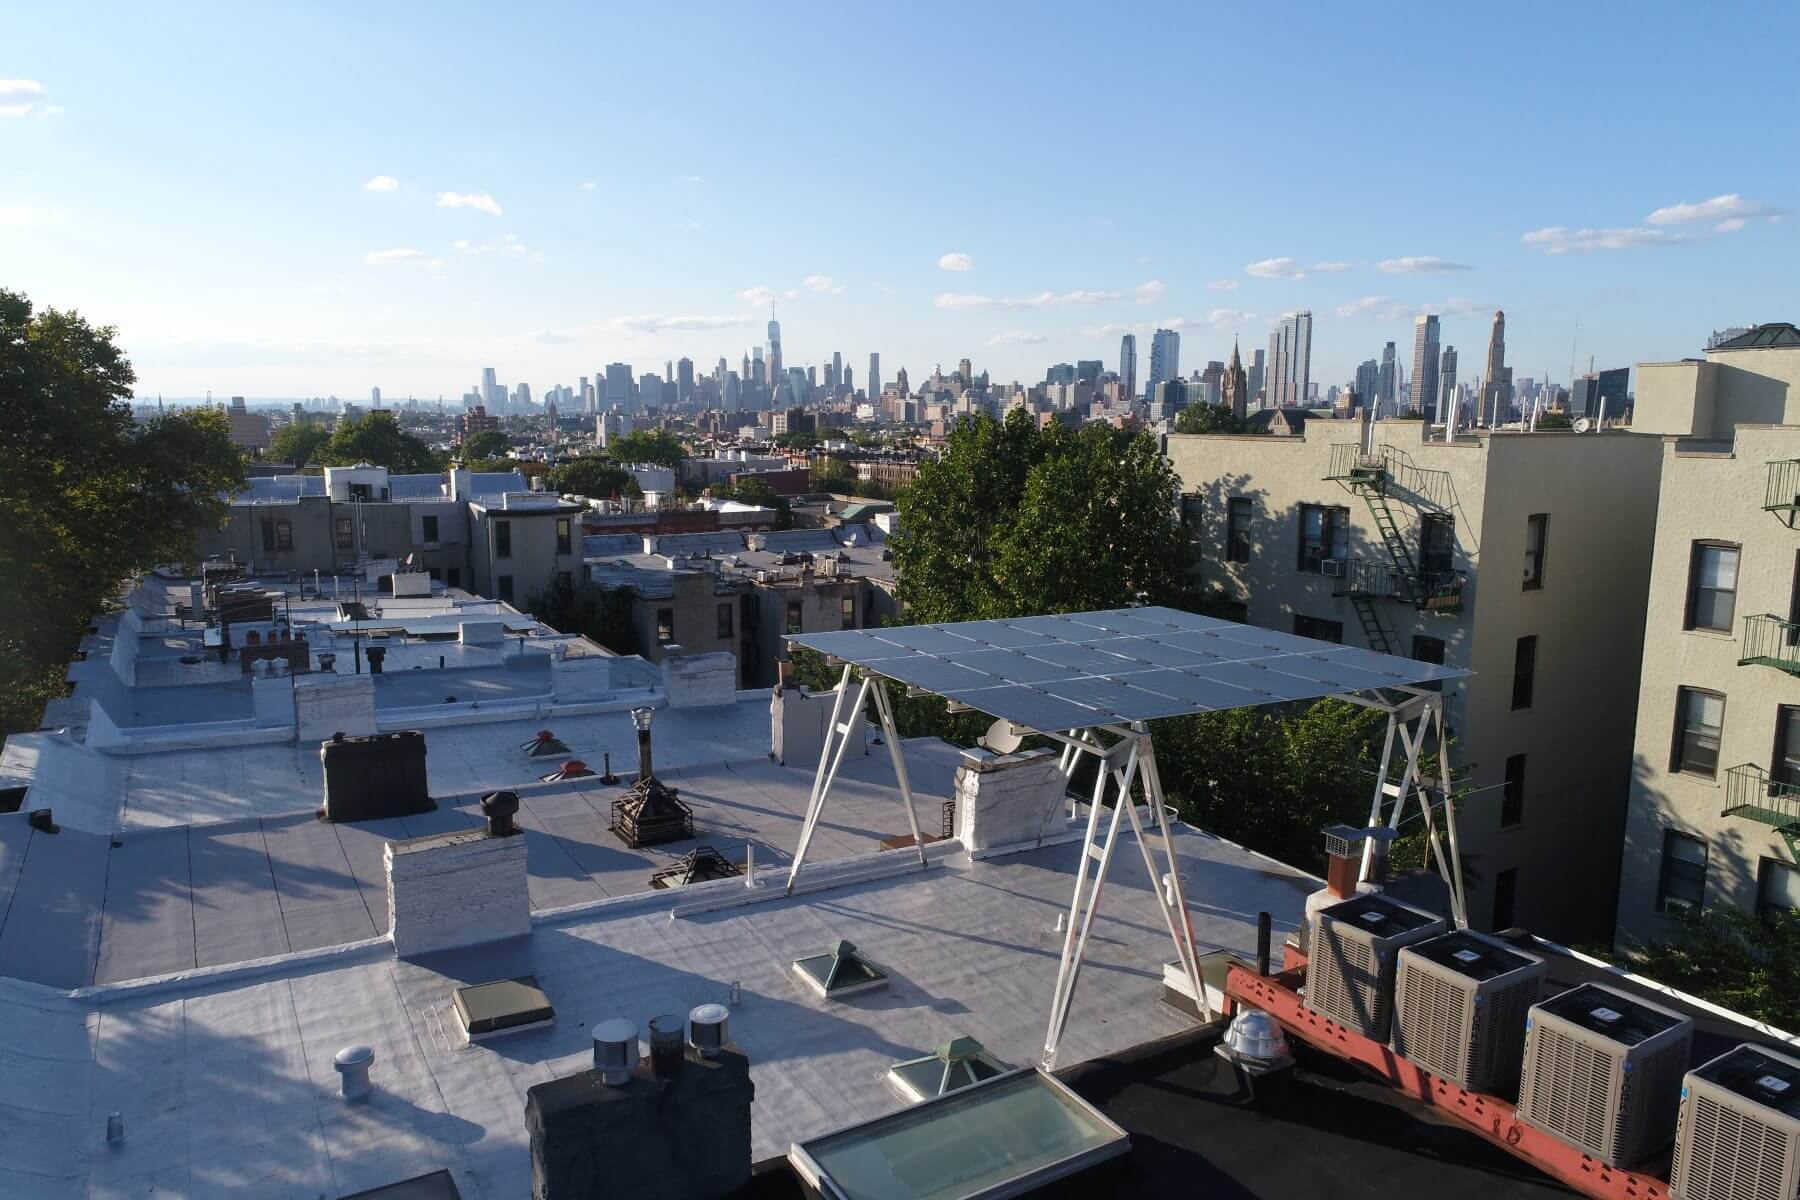 Rooftops with solar panels